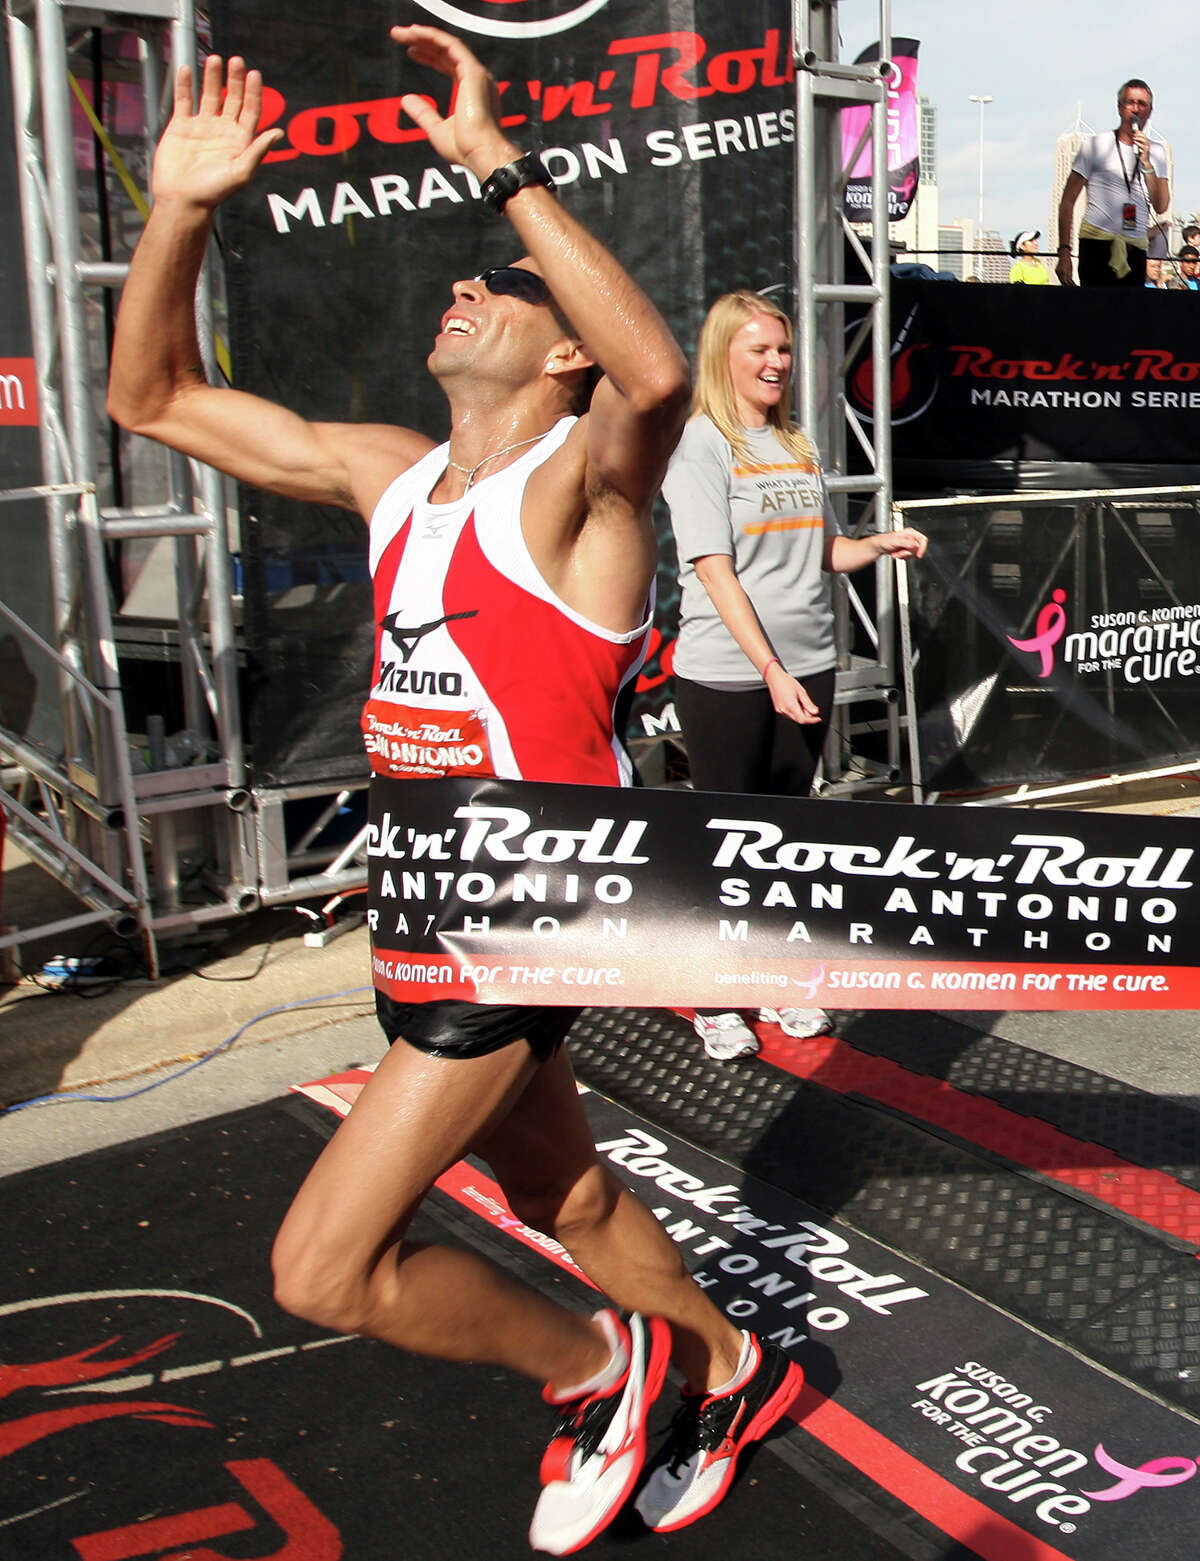 Jose Munoz, of San Antonio, crosses the finish line at the Rock 'n' Roll San Antonio Marathon and 1/2 Marathon, Sunday, Nov. 11, 2012. Munoz came in first place in the men's marathon division with a time of 2:27:51.